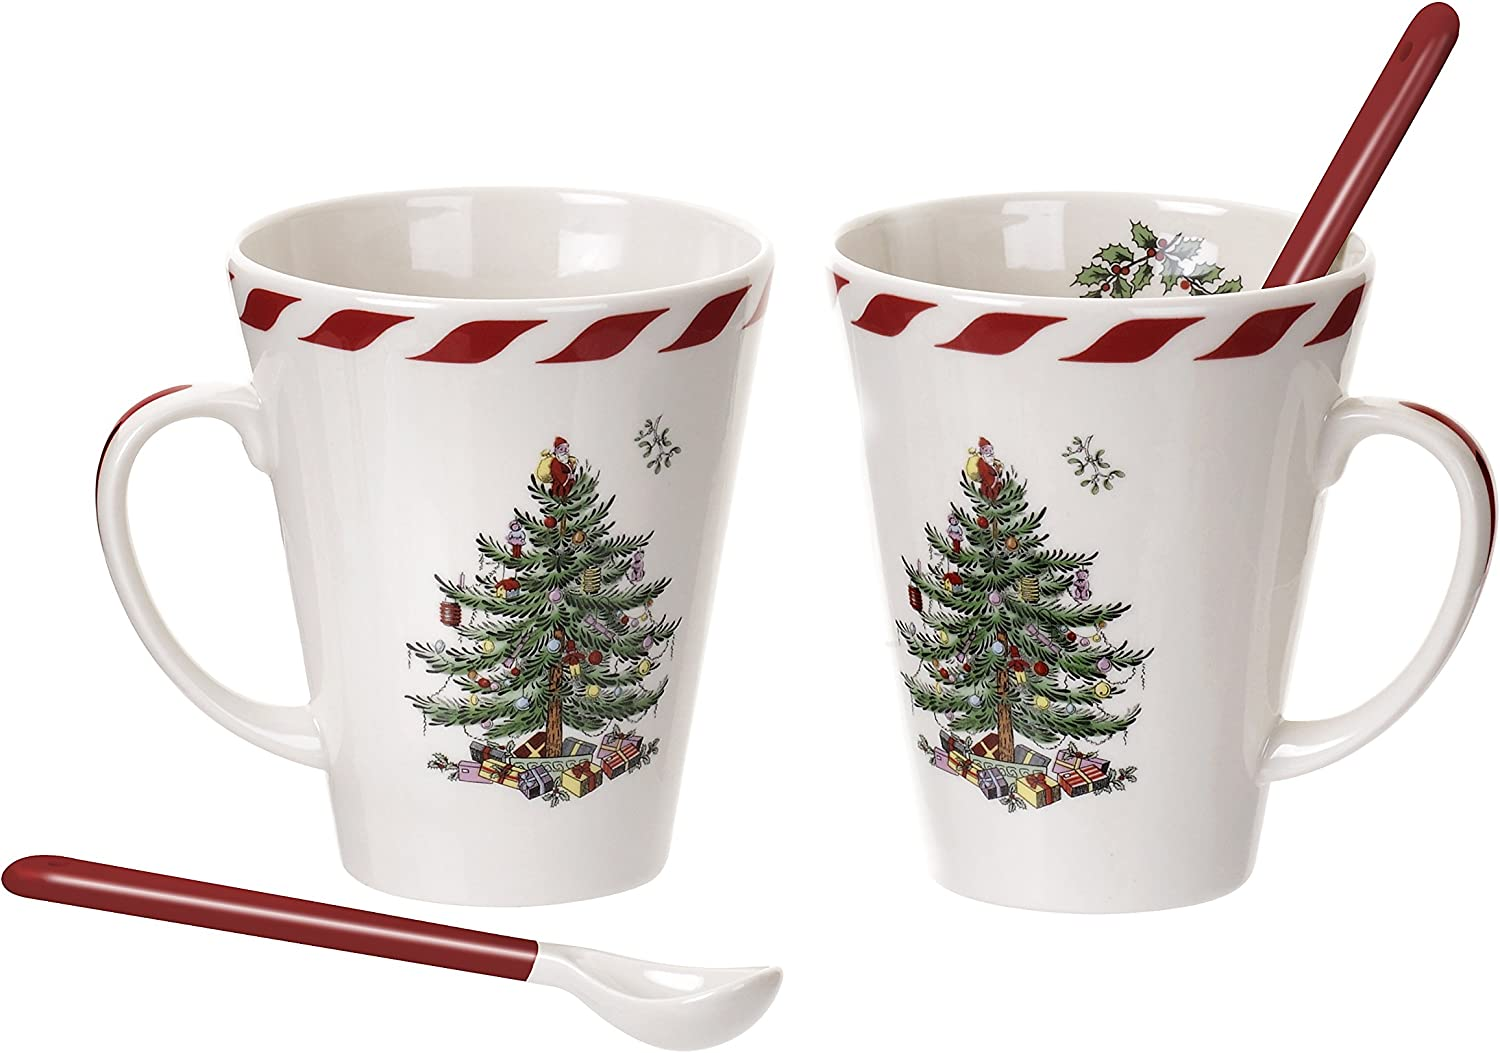 Spode Christmas Tree Peppermint Mugs with Spoons  Set of 2